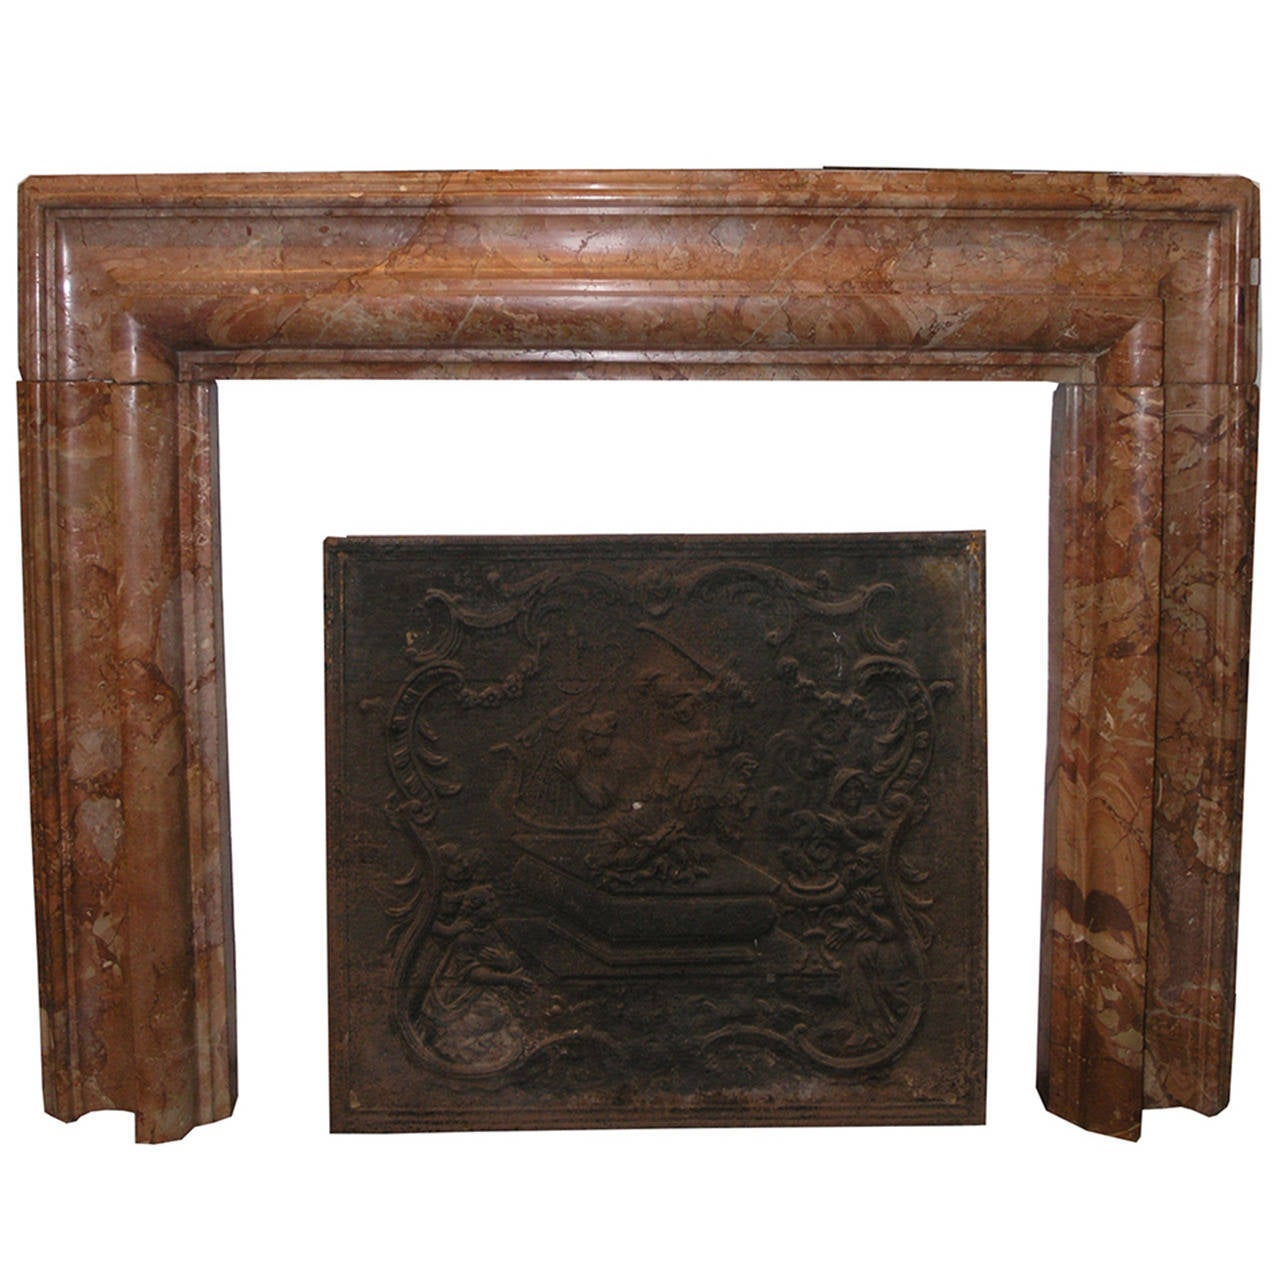 this antique marble fireplace is no longer available